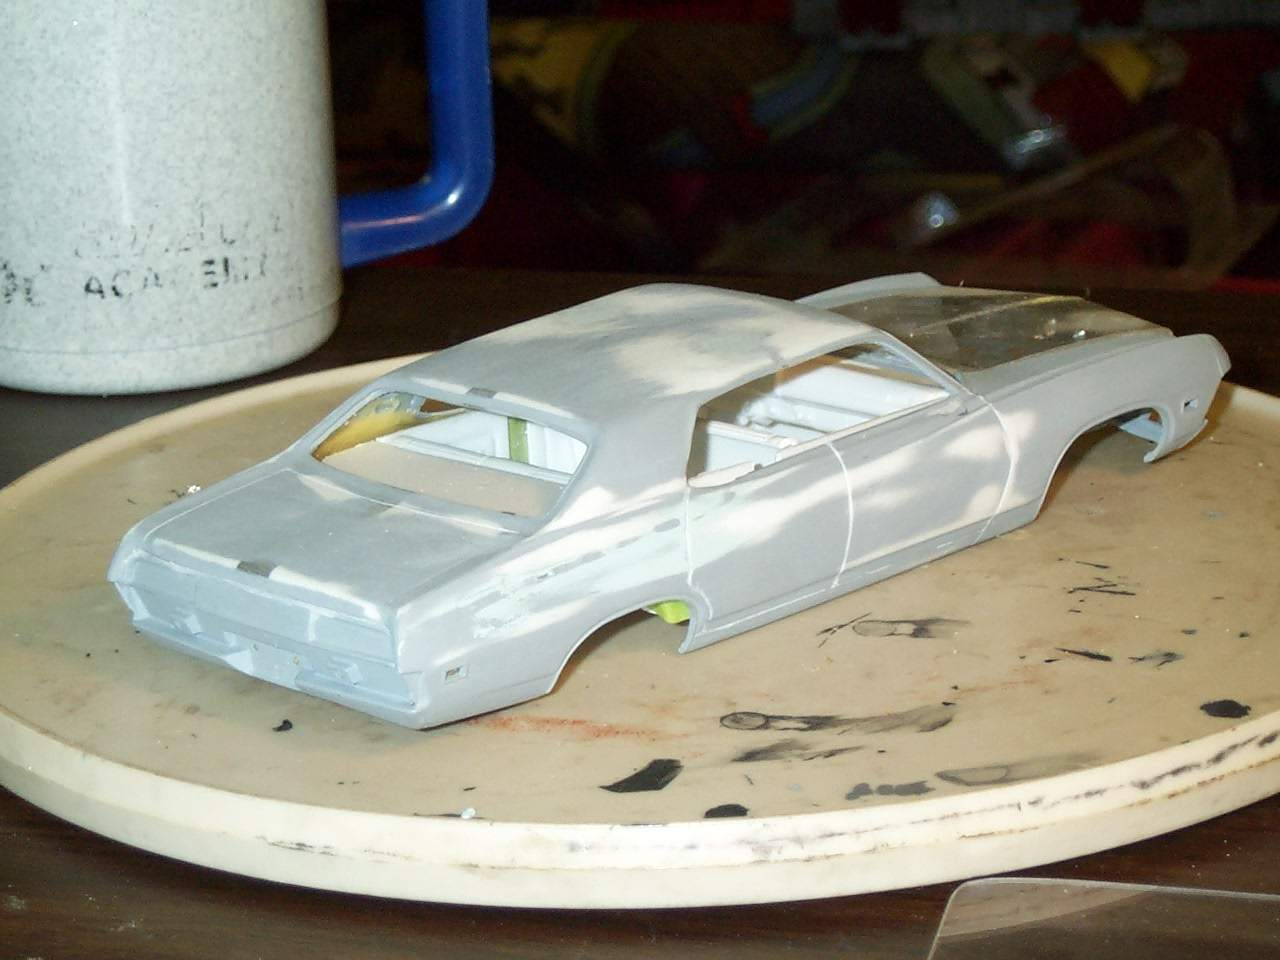 70 Torino 4door hardtop. Wheelbase is the same from 2 door to 4 door but  interior tub needs to be reworked. Couger roof & deck had to be widened about 7 scale inches to fit the torino roof & quarters